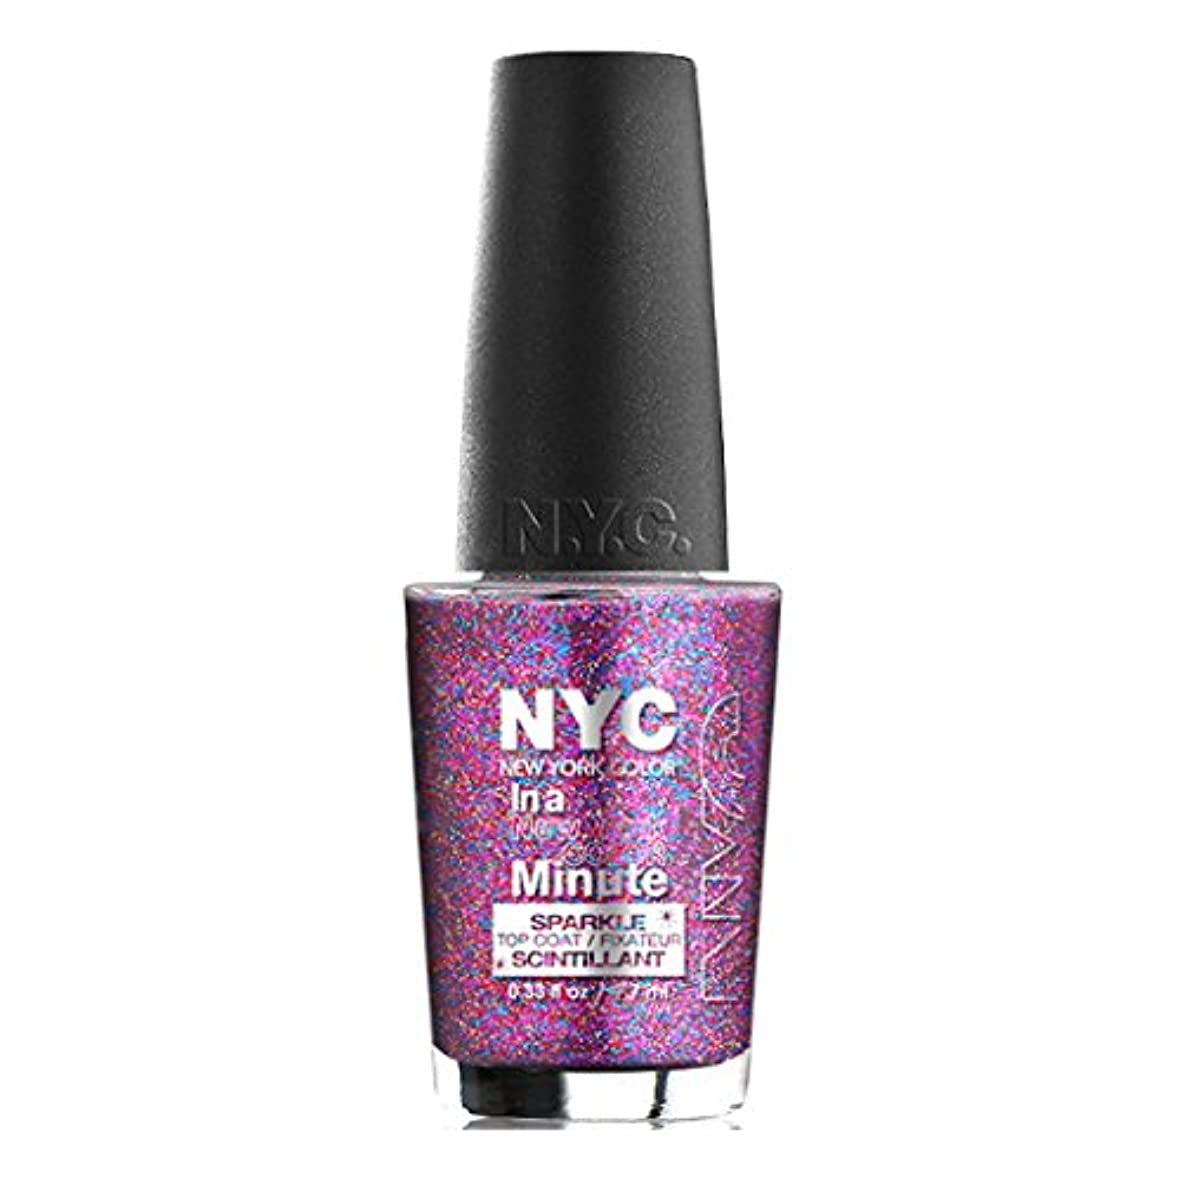 予言するビデオ仮称(6 Pack) NYC In A New York Color Minute Sparkle Top Coat - Big City Dazzle (並行輸入品)